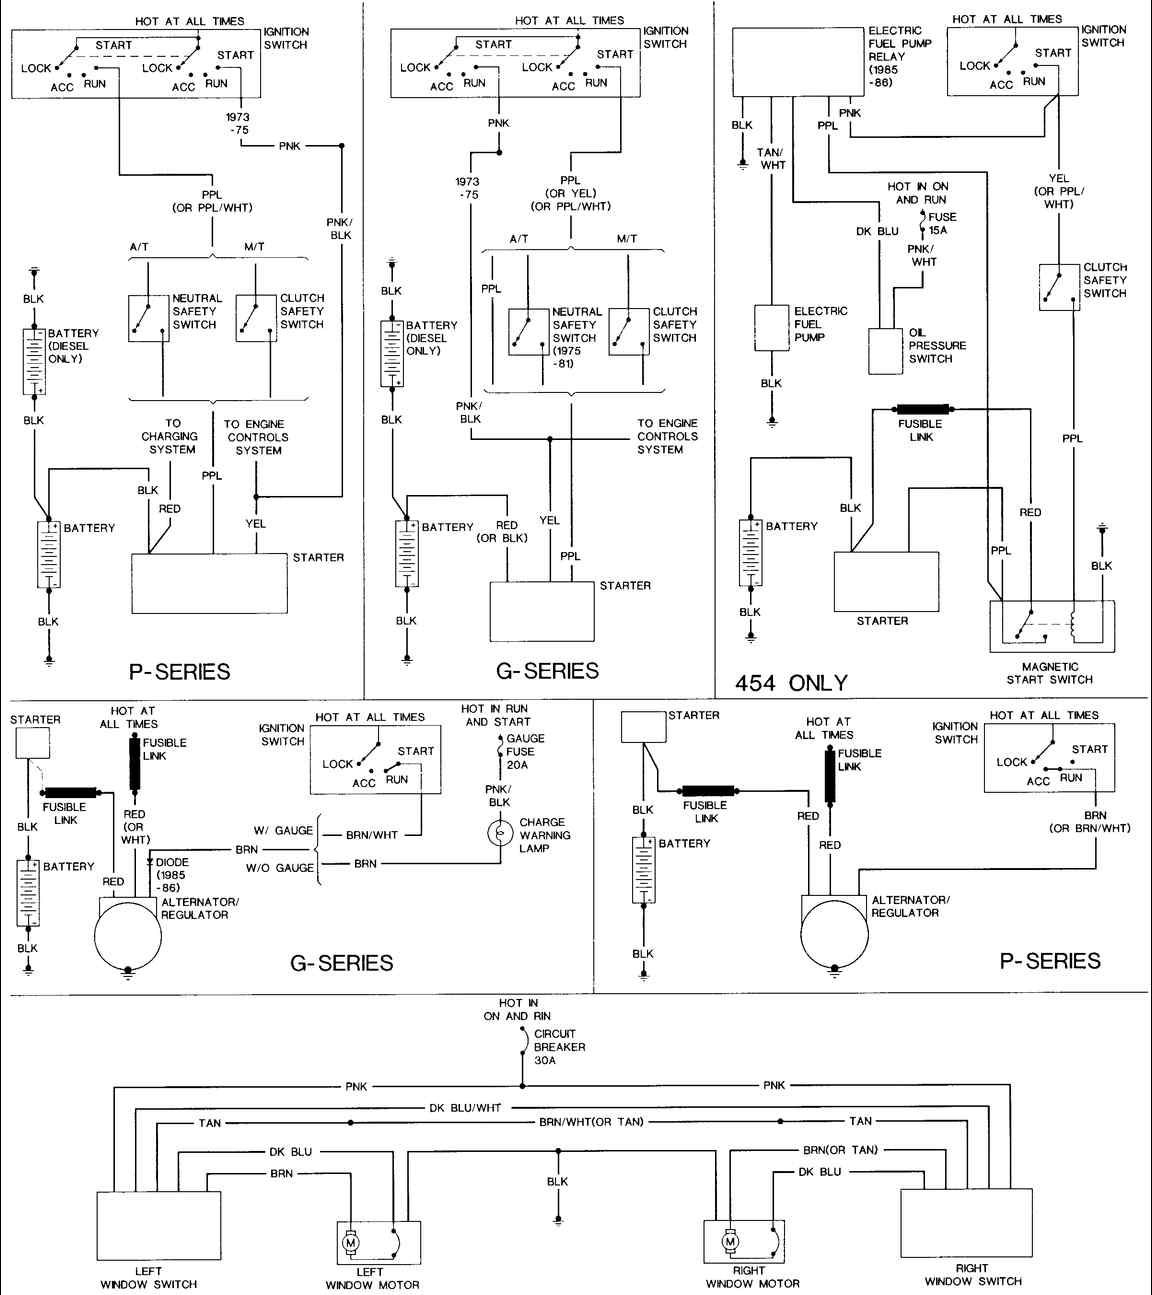 0c73623a181dc376dbb4777e2029d285 85 chevy truck wiring diagram 85 chevy van the steering column